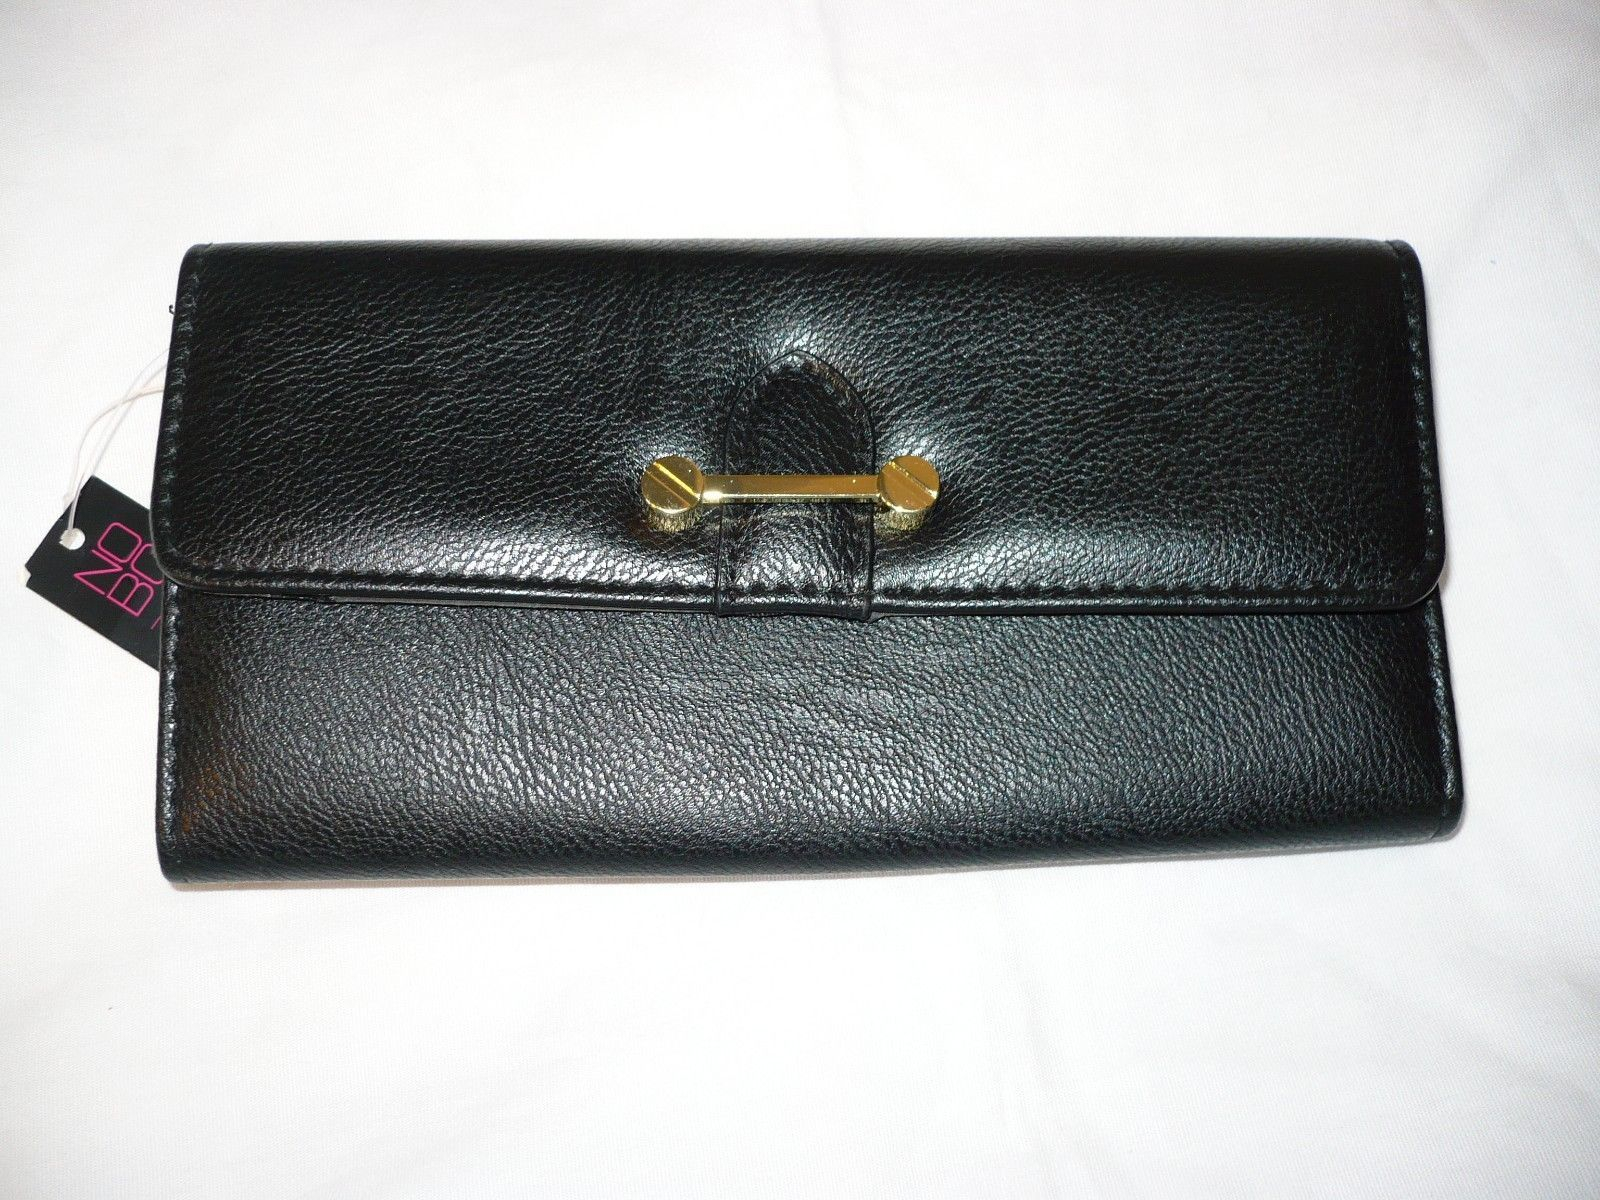 Primary image for No Boundaries Ladies Clutch Wallet Black With Gold Accents NEW